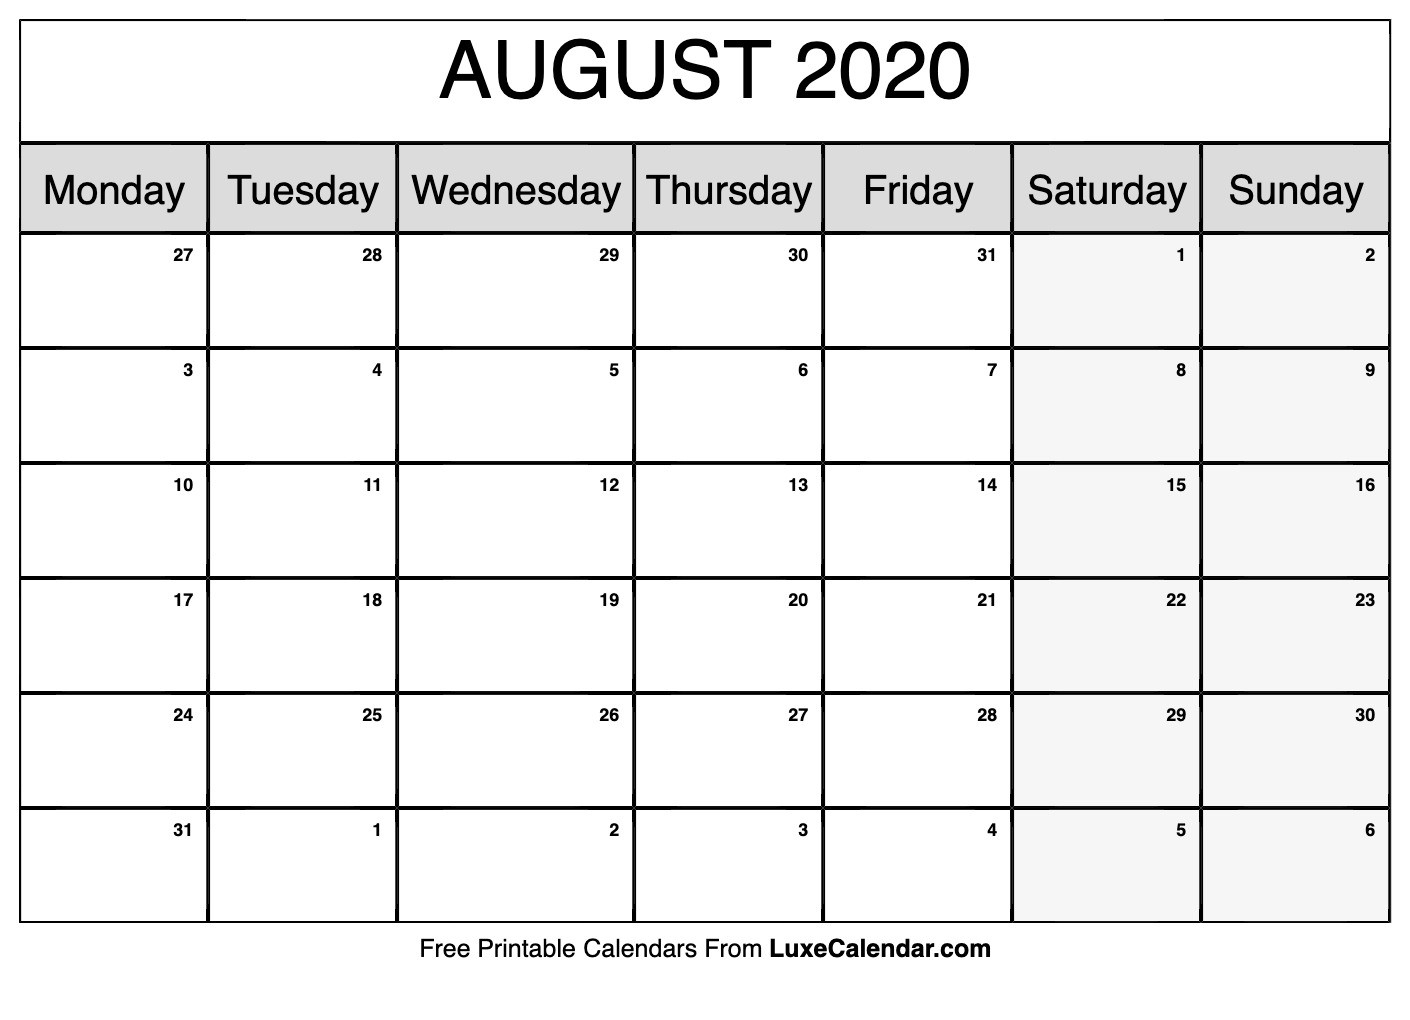 Blank August 2020 Calendar Printable - Luxe Calendar-Monthly Planner June July August2020